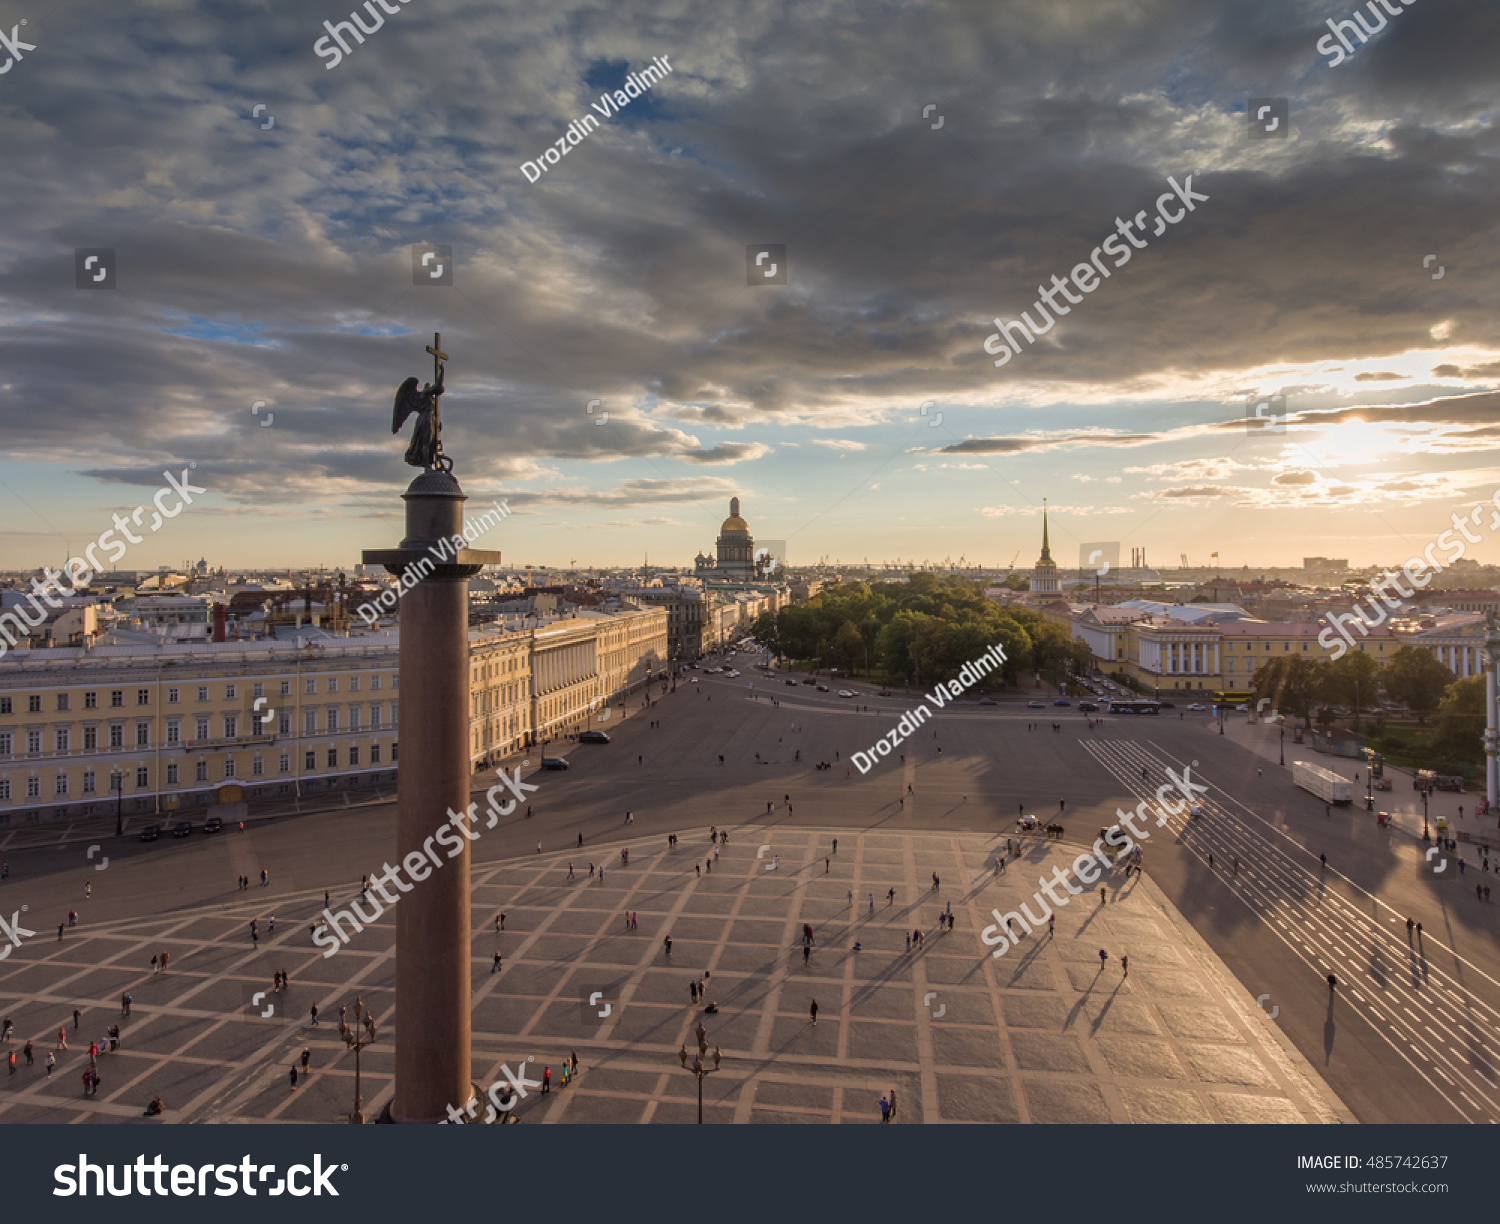 Russia Saint-Petersburg 19 September 2016 Aerial view of Palace Square and Alexander Column at sunset a gold dome of St Isaac's Cathedral the Winter Palace the Hermitage little people walks